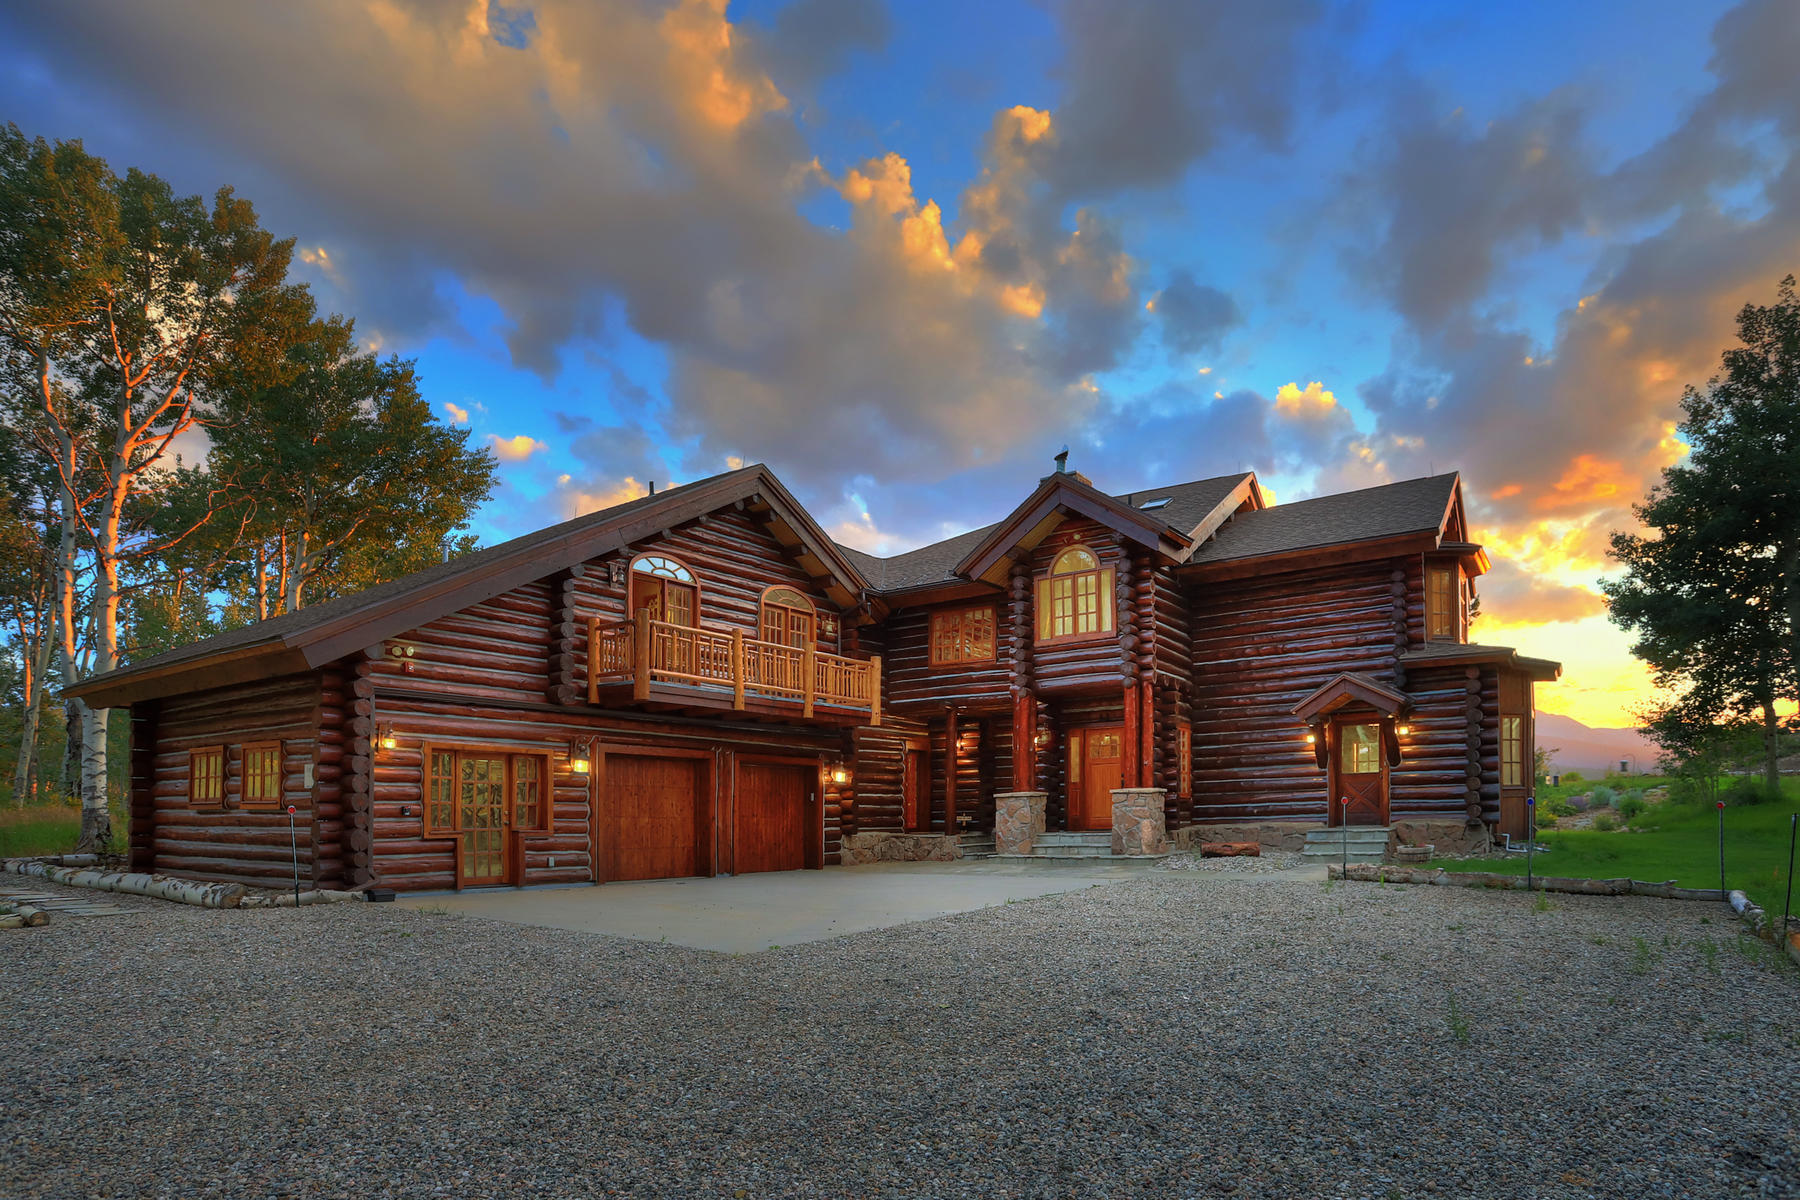 Single Family Home for Active at Four Paws Ranch 863 Rodeo Drive Silverthorne, Colorado 80498 United States